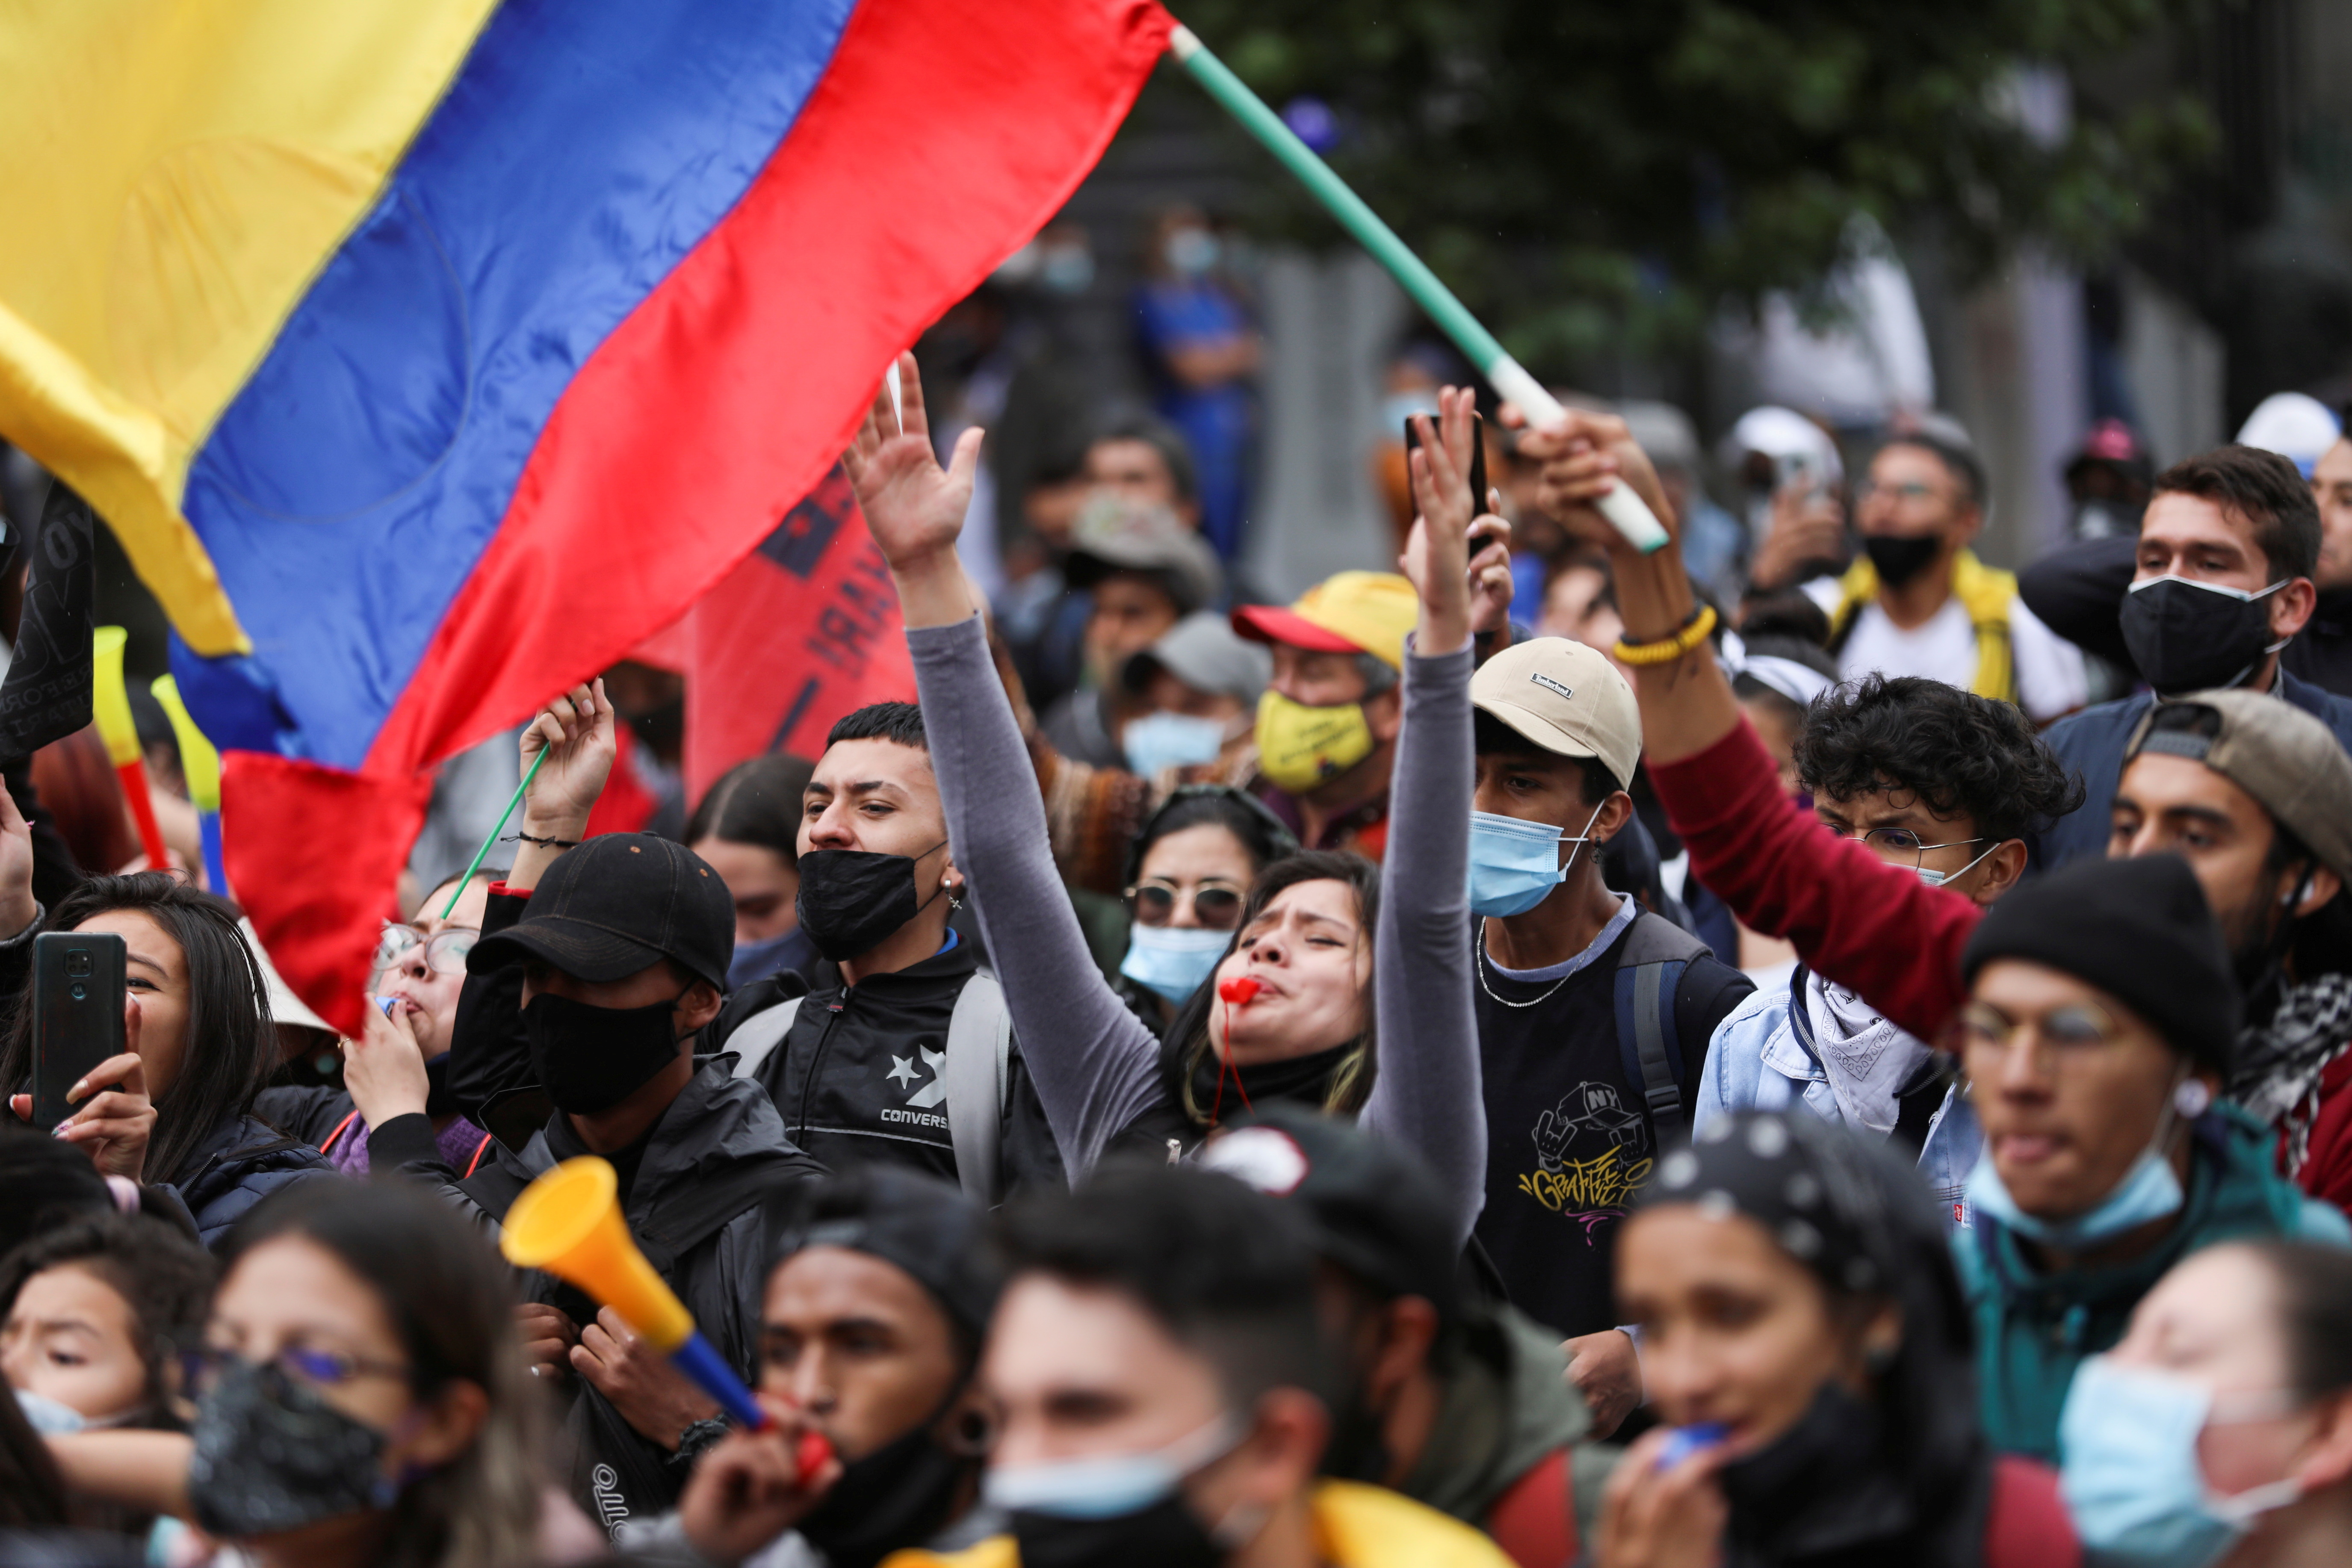 Demonstrators take part in a protest against the tax reform of President Ivan Duque's government in Bogota, Colombia, April 29, 2021. REUTERS/Luisa Gonzalez/File Photo